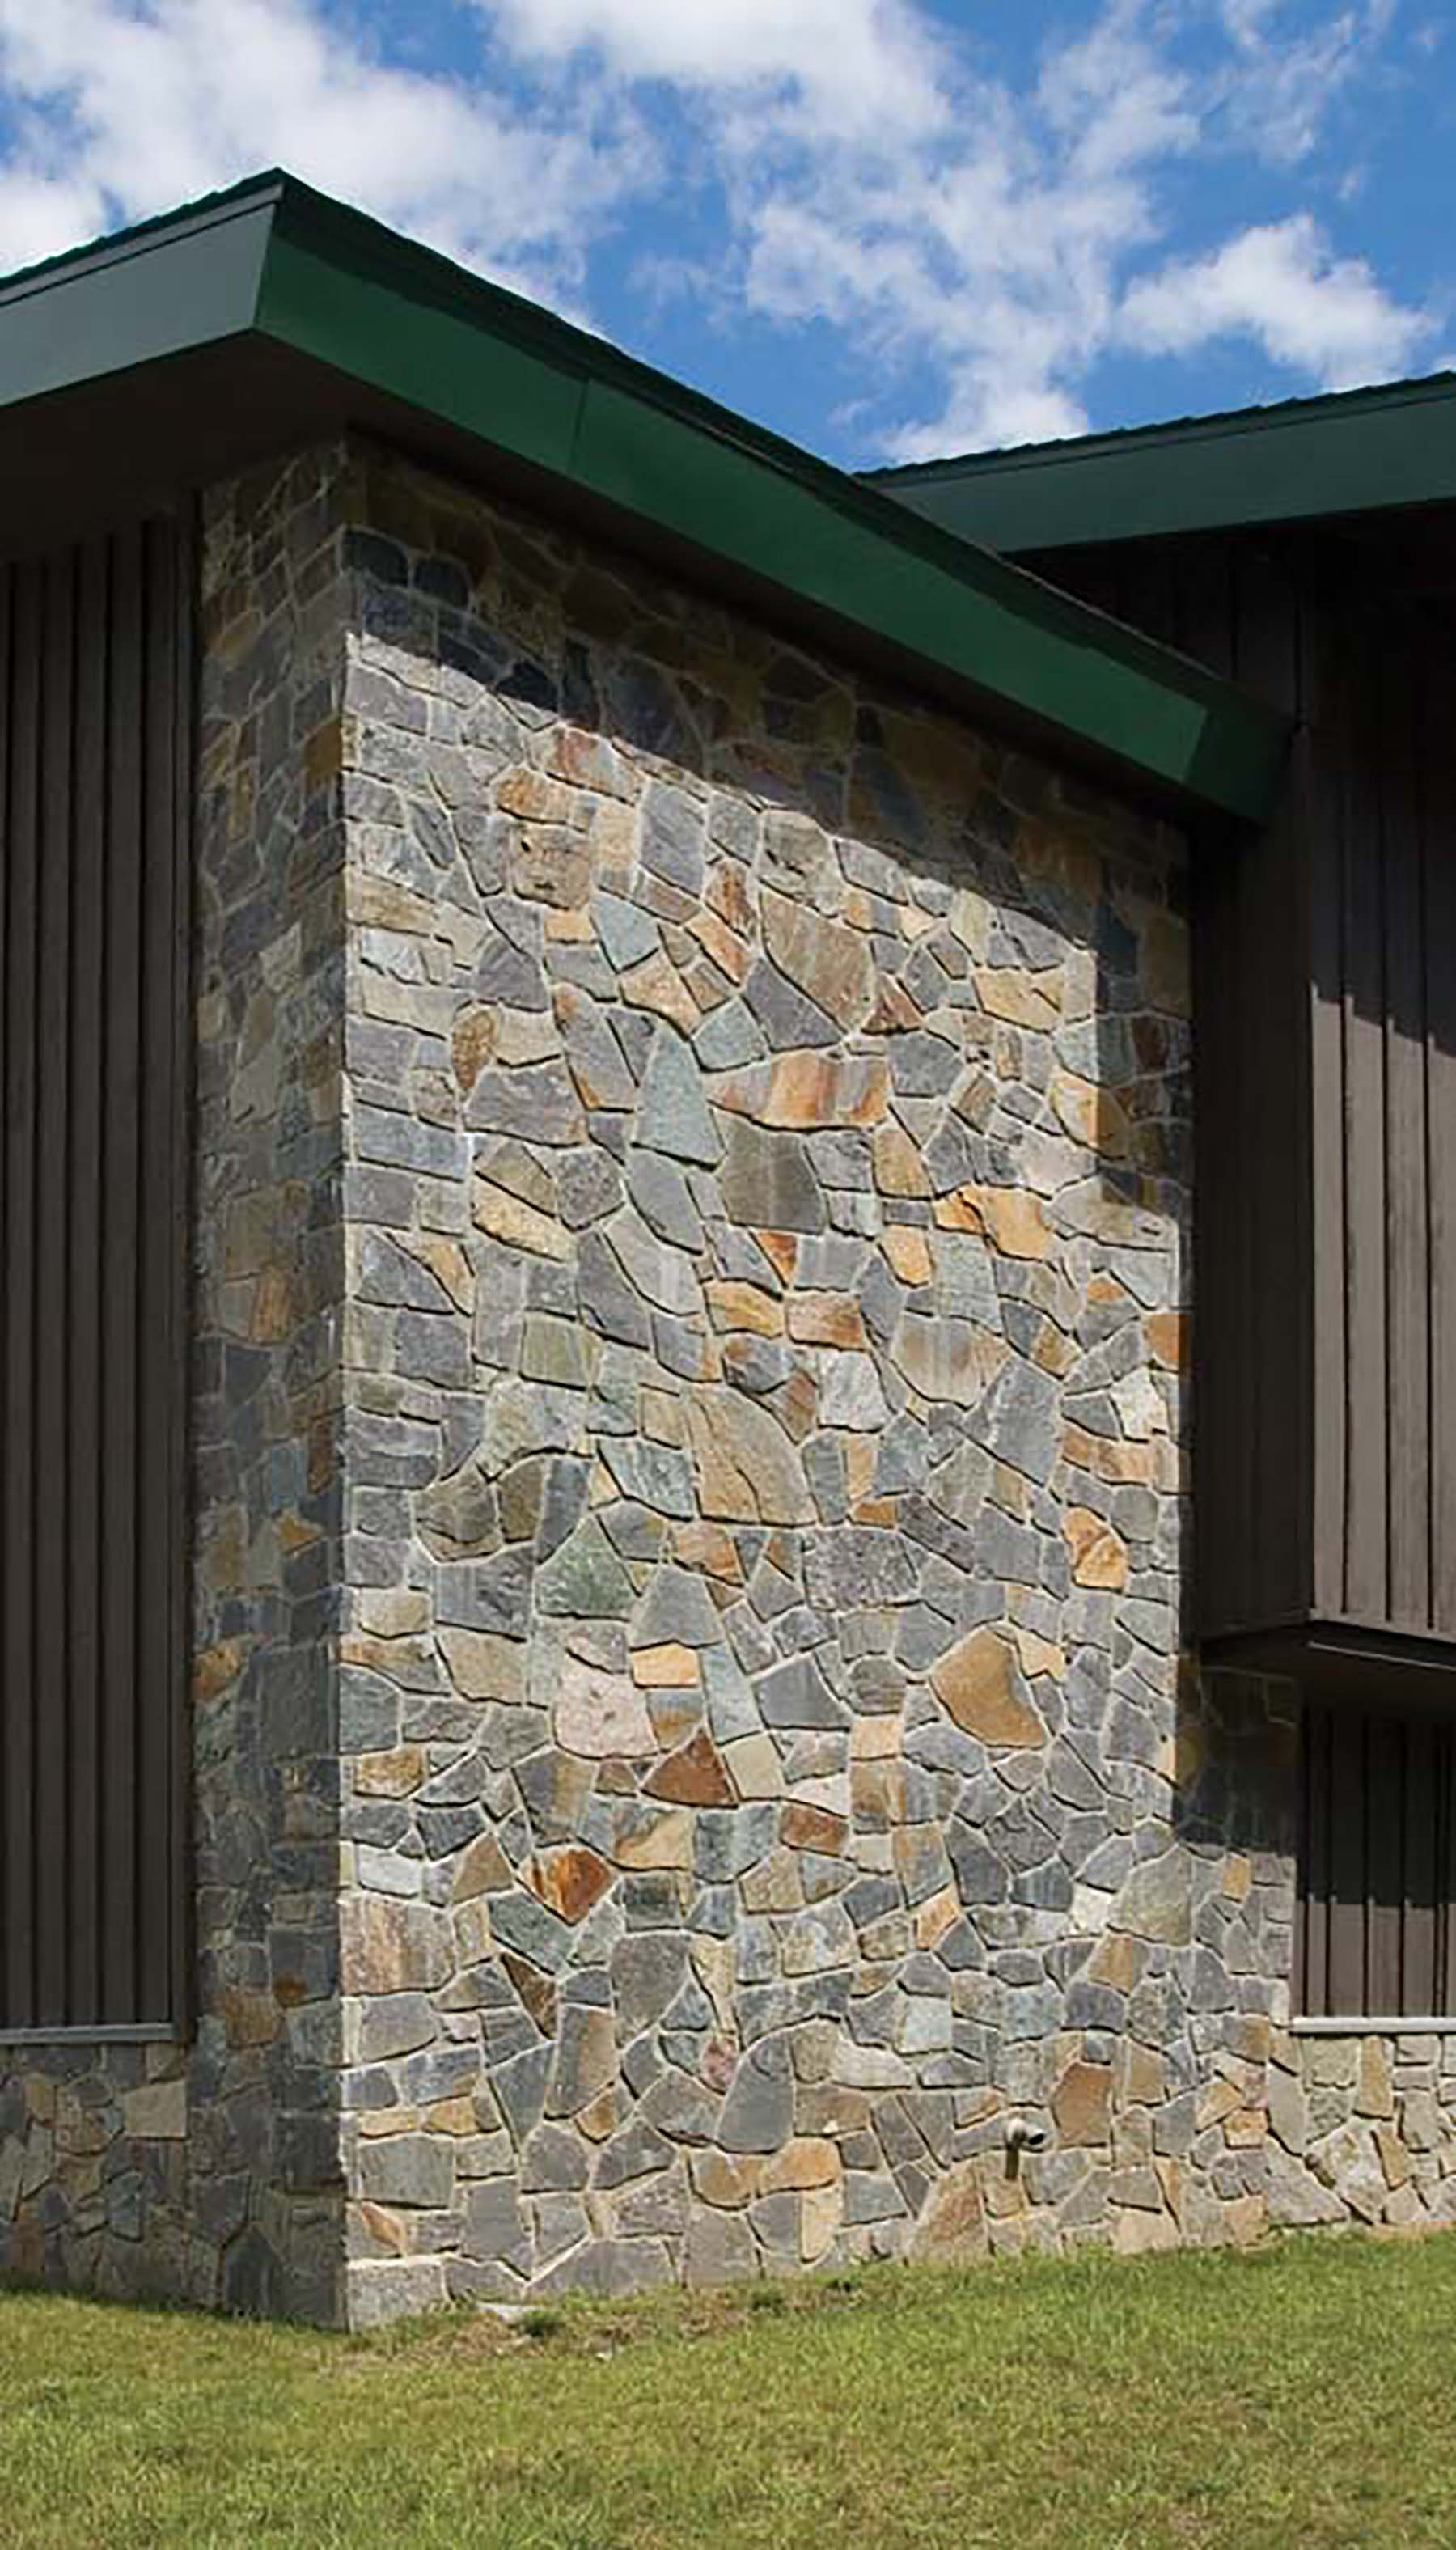 saratoga granite mosaic natural stone wall on residential building